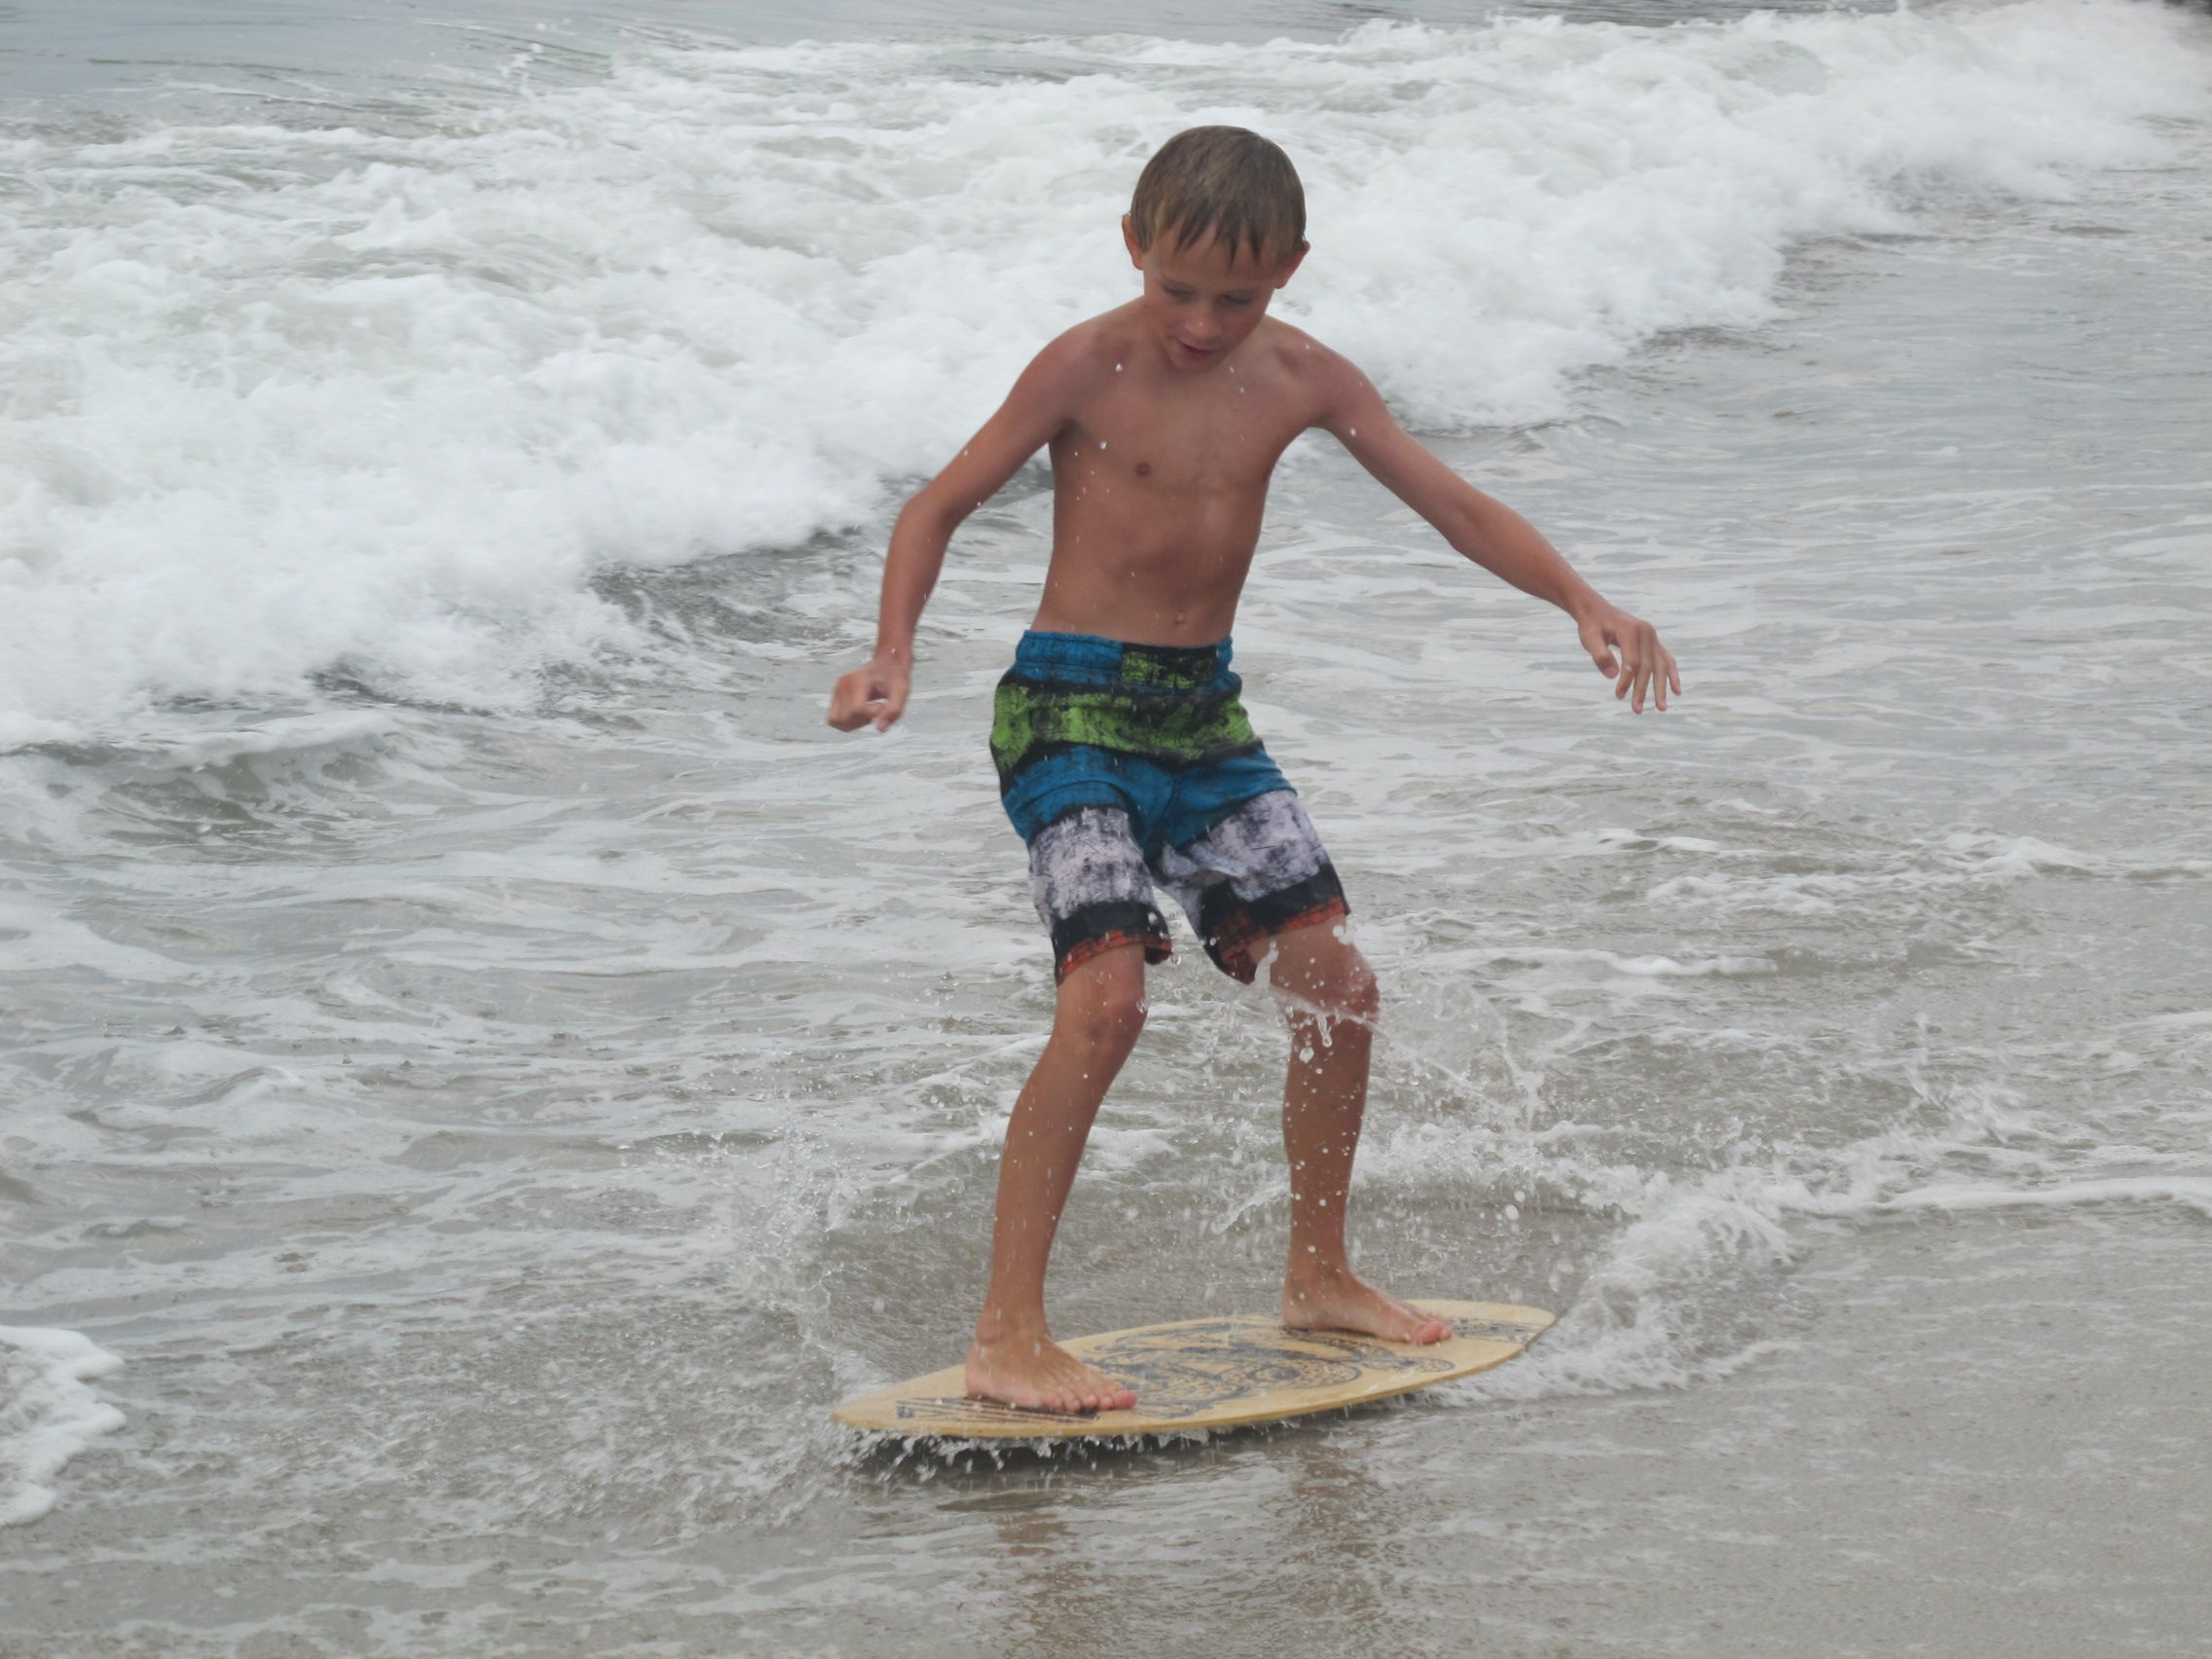 Skimboarding In Cape May Nj During Ecoventures Kids Programs